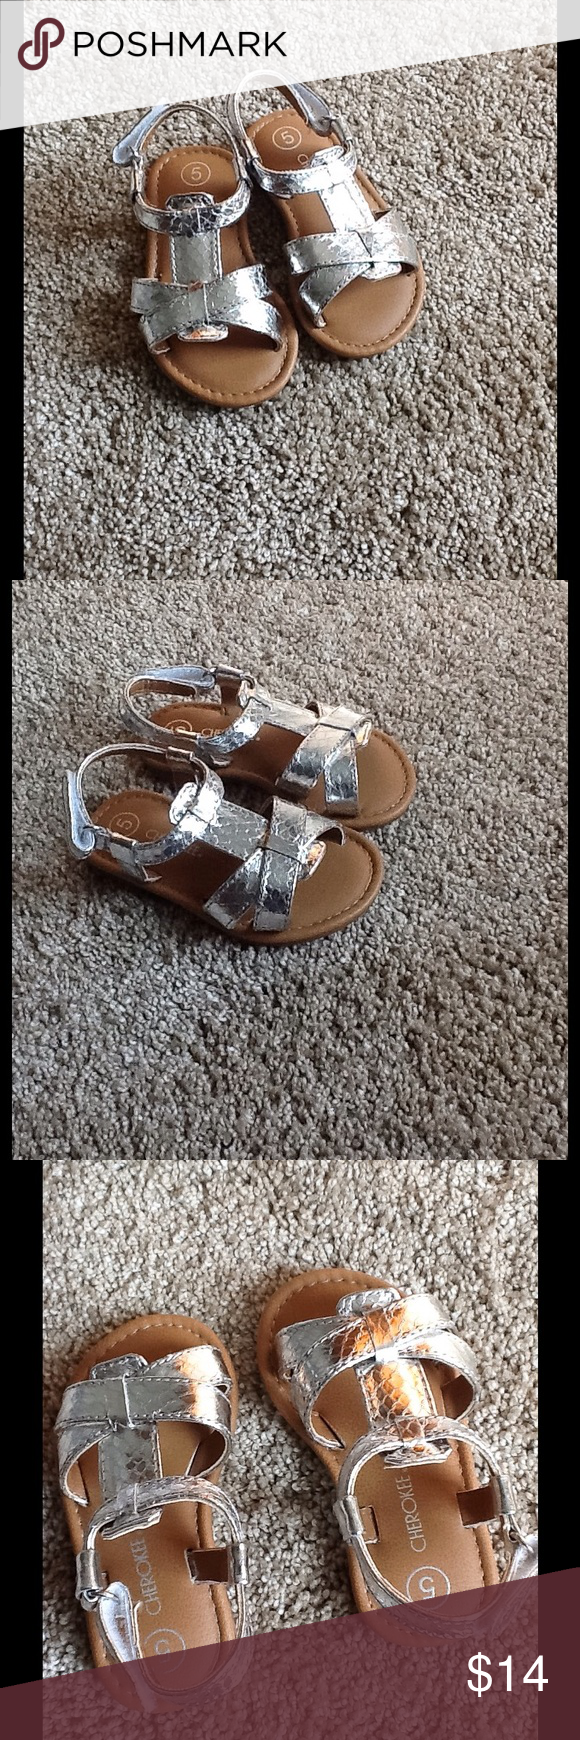 "NEW! Cherokee Girls Silver Sandals New! No longer have the tags. Never worn, my daughter just wasn't ""into"" sandals yet . Very cute! These have Velcro closure. Cherokee Shoes Sandals & Flip Flops"